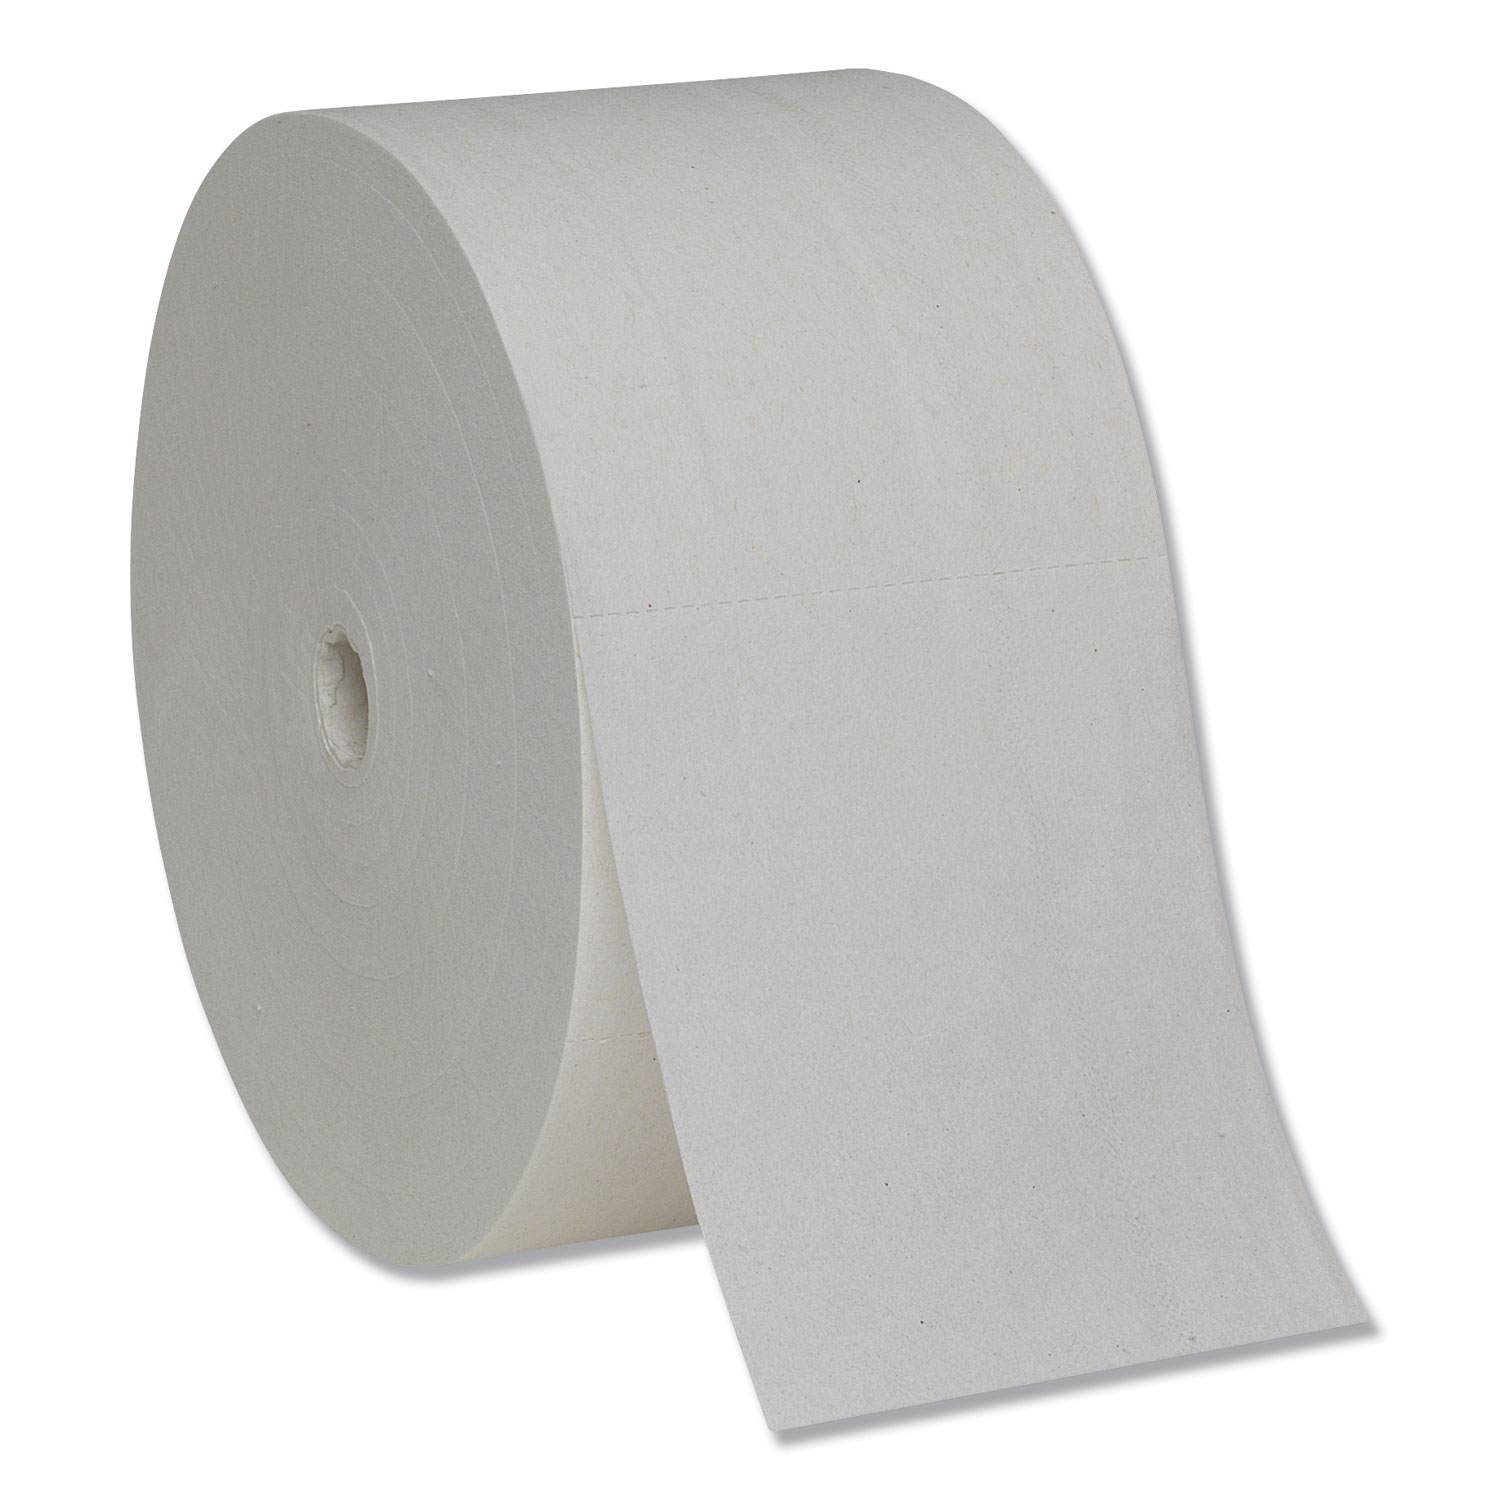 Pacific Blue Ultra Coreless Toilet Paper, Septic Safe, 2-Ply, White, 1700 Sheets/Roll, 24 Rolls/Carton